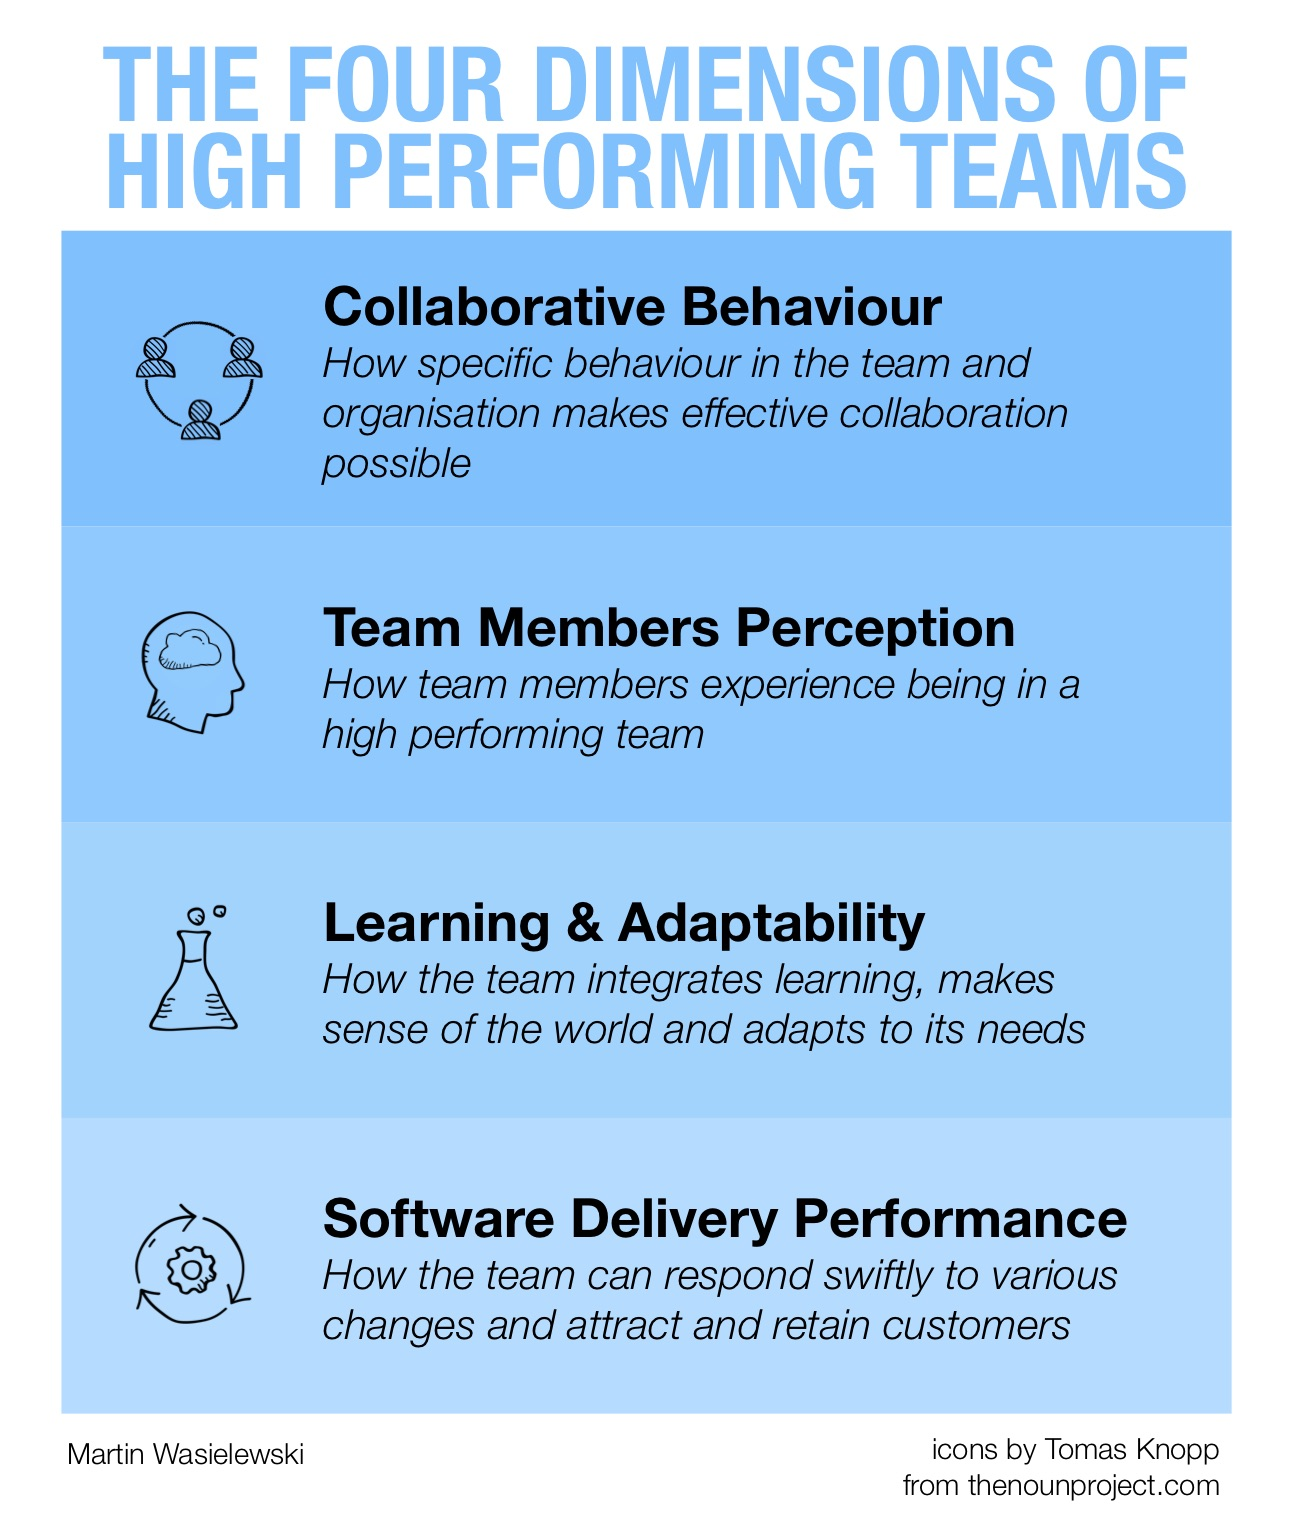 The Four Dimensions of High Performing Teams